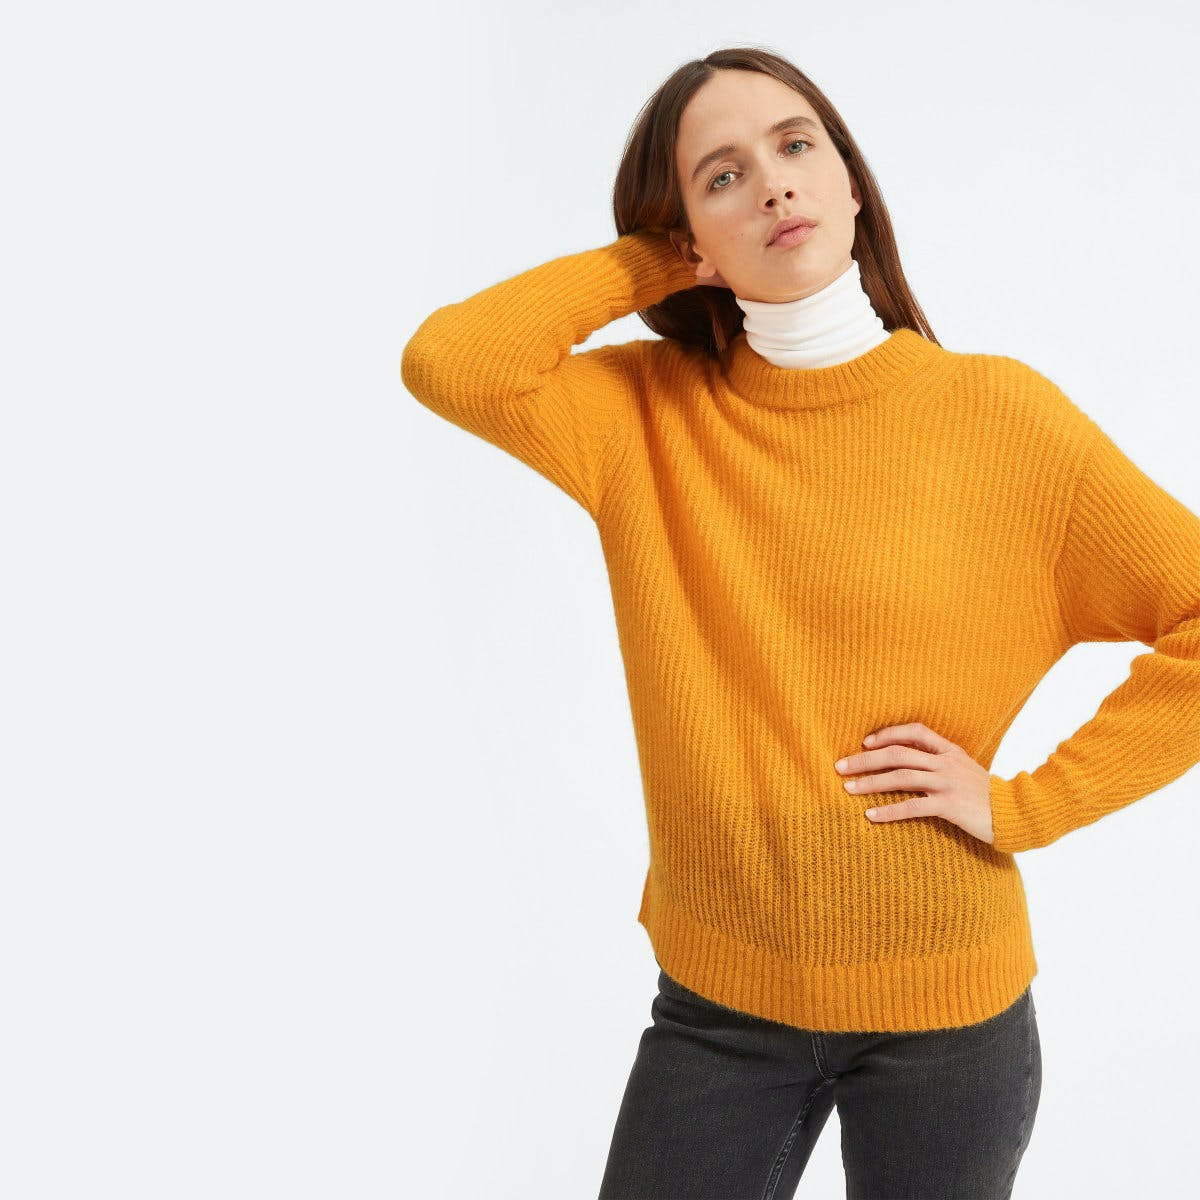 everlane, everlane knit, waffle knit sweater, knit sweater, trutleneck, sweater, orange knit sweater, denimblog, denim blog